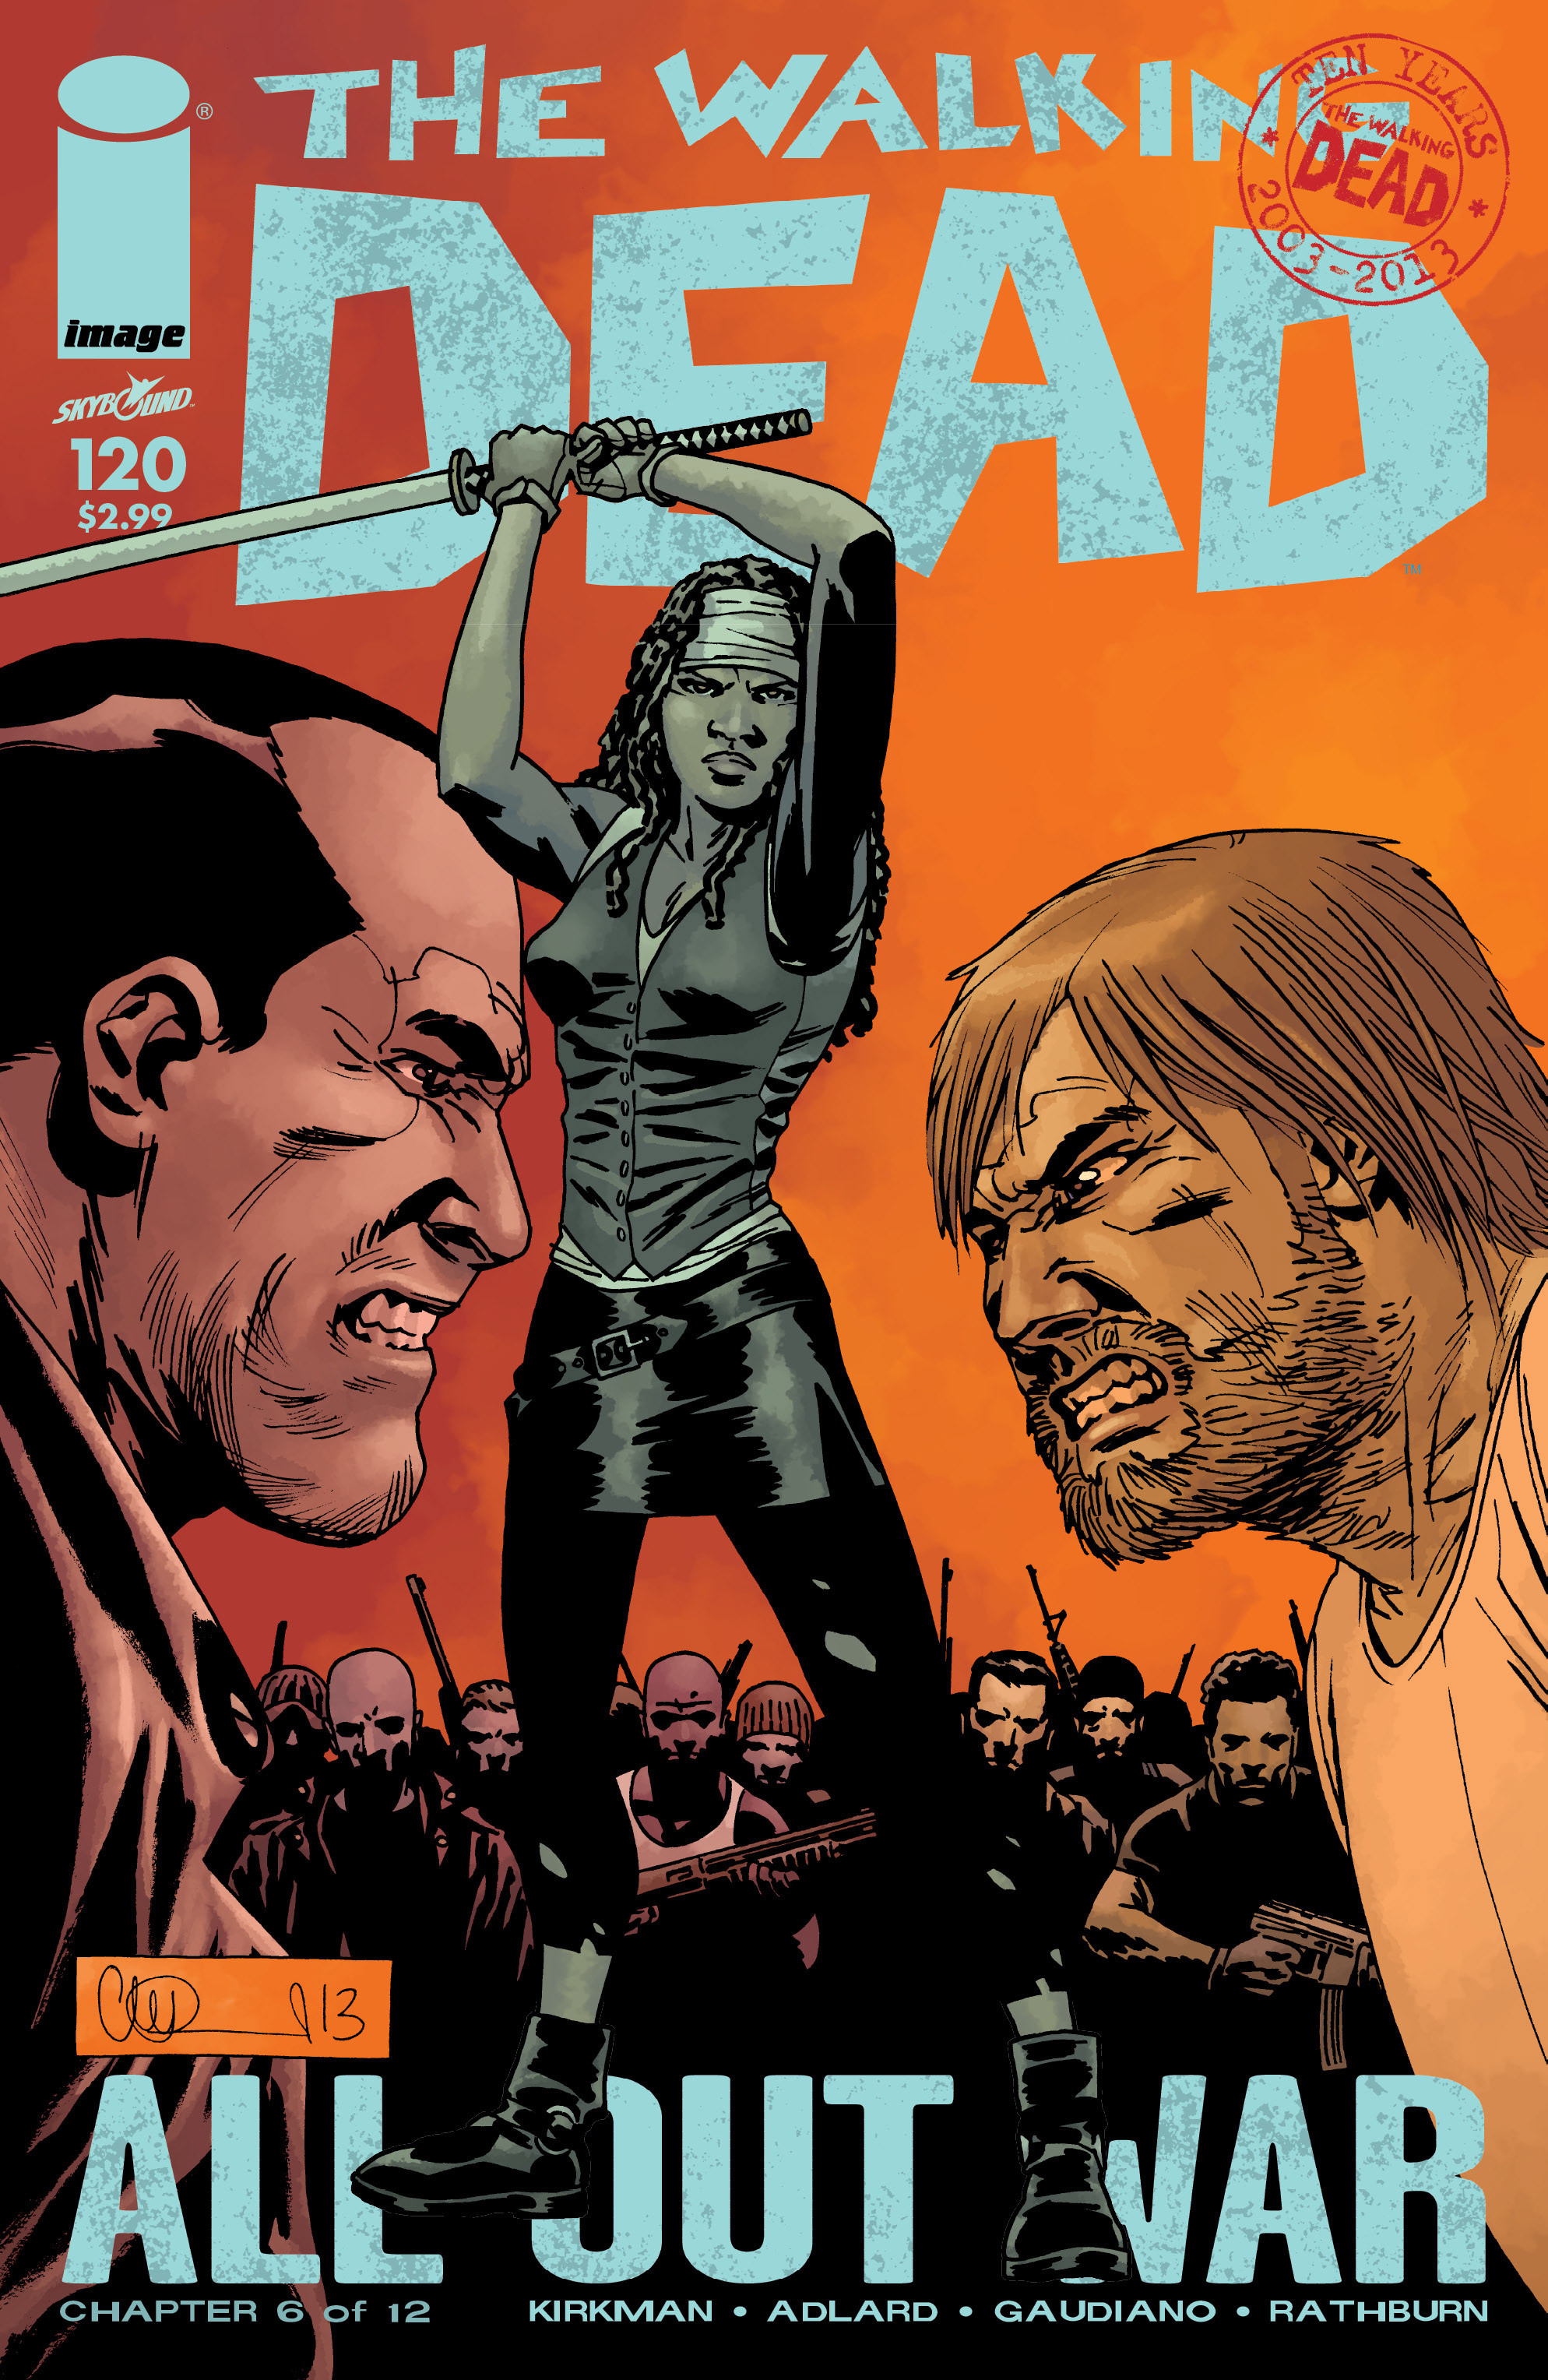 The Walking Dead 120 Page 1